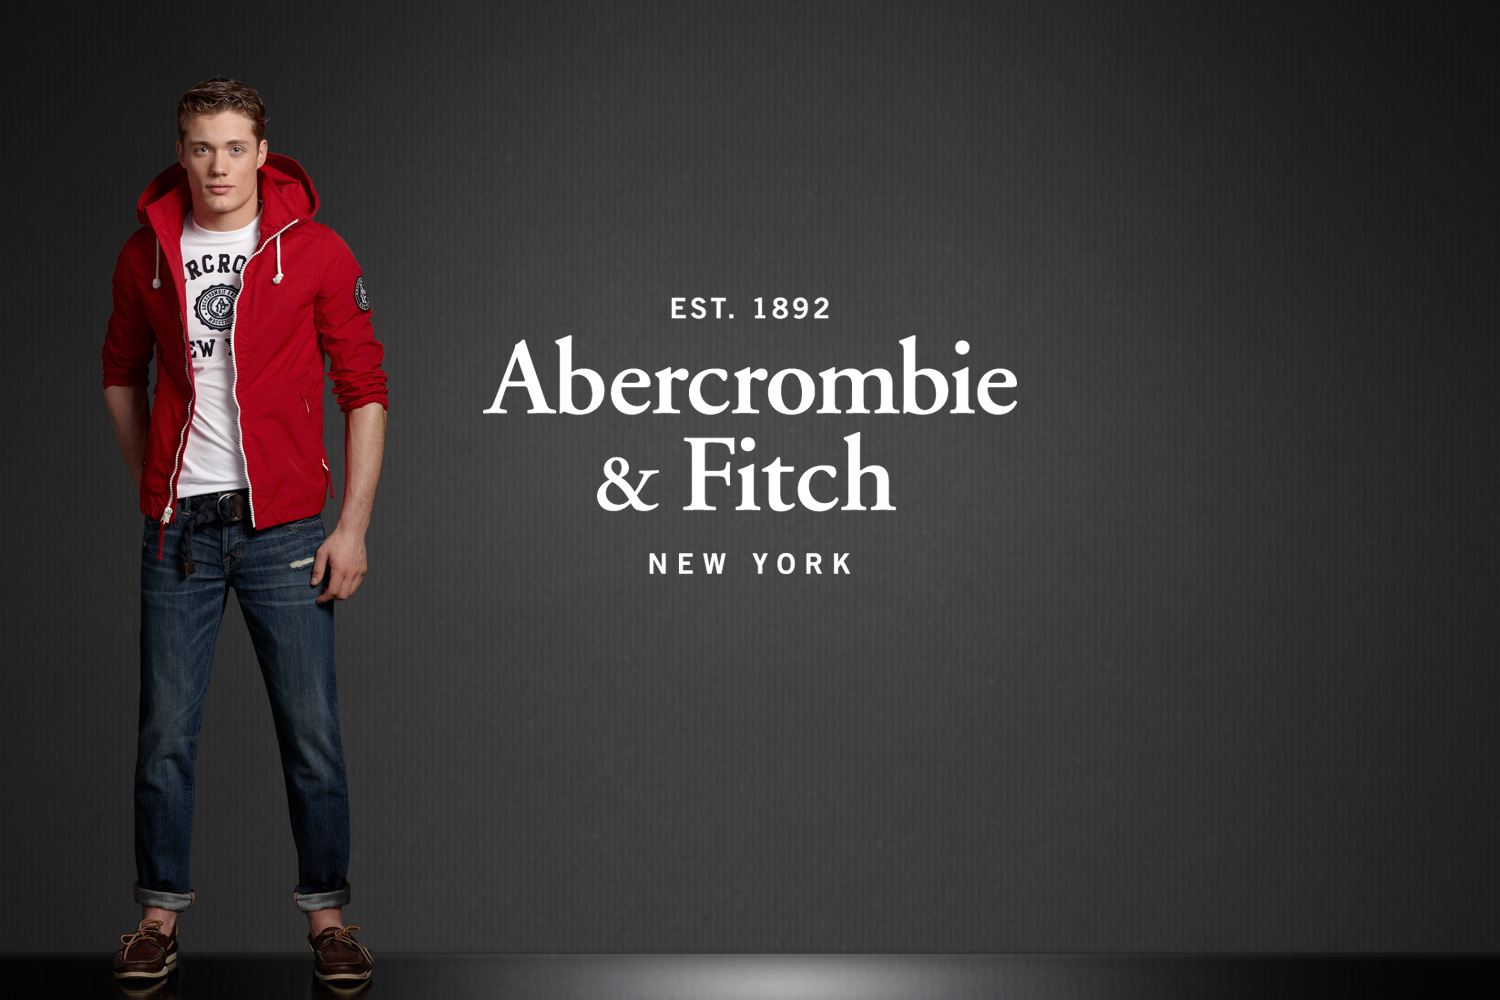 ABERCROMBIE_and_FITCH_MENS_fashion_cover.jpg